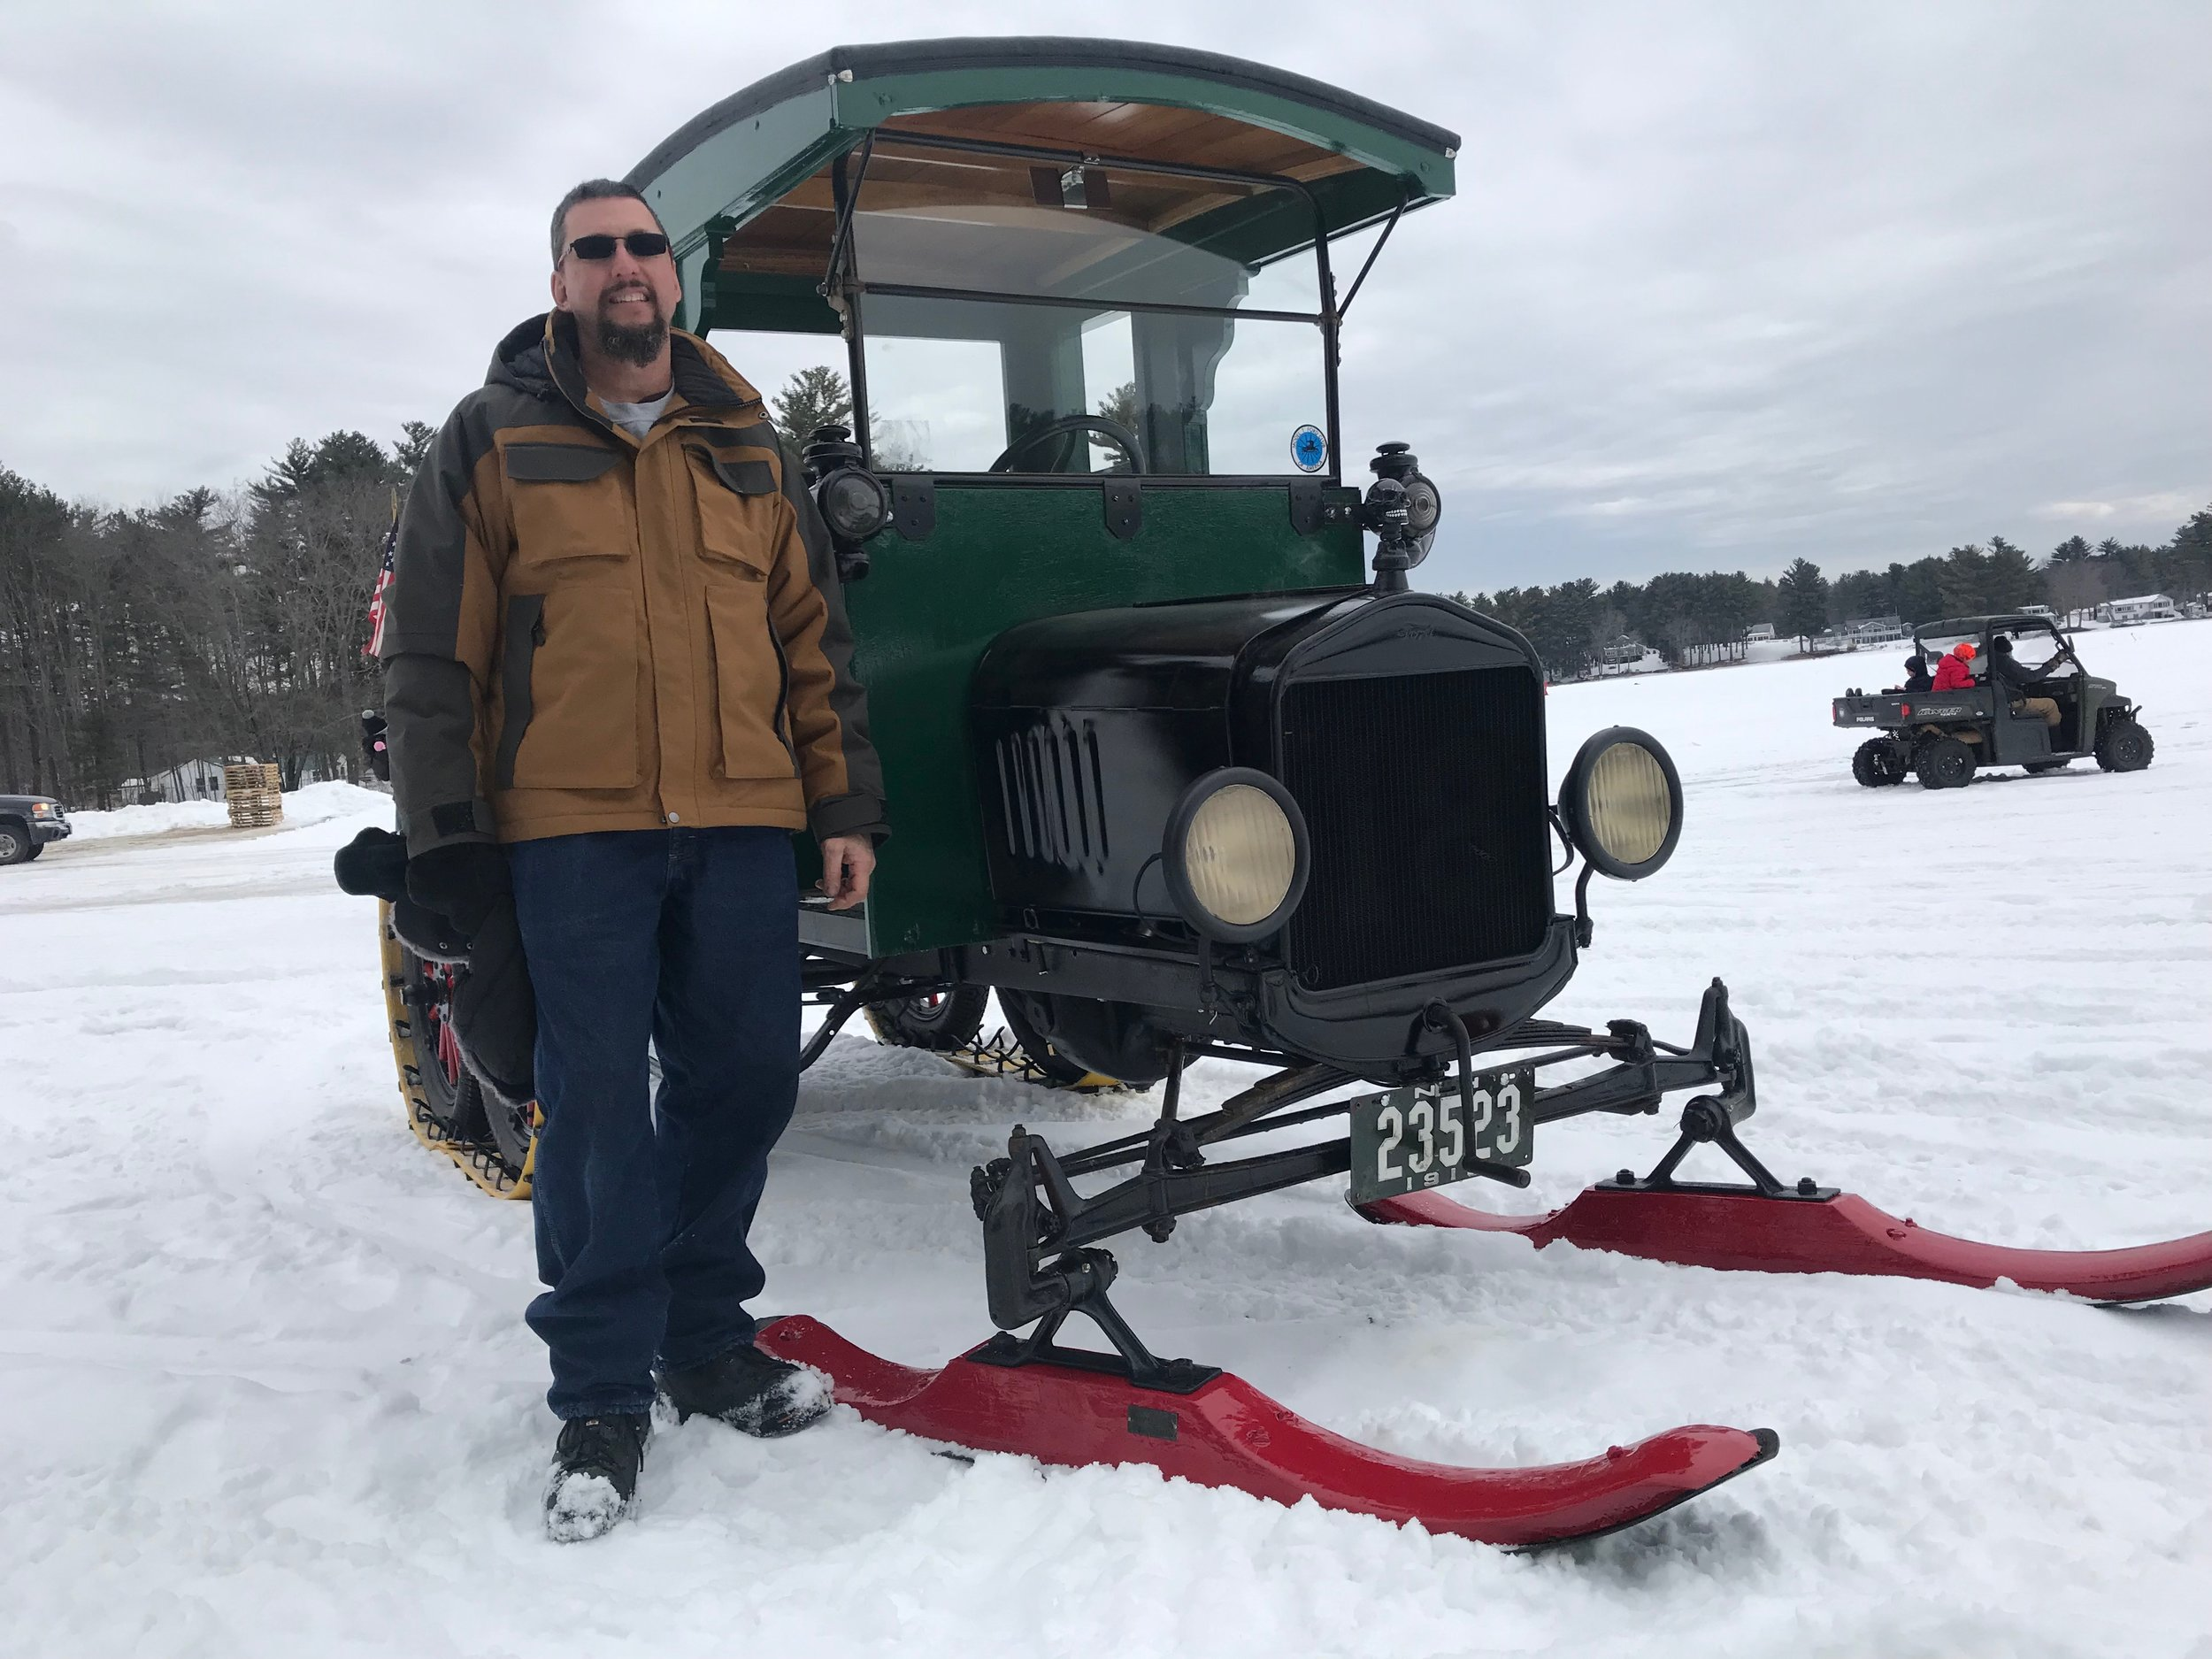 Story & Photos by Mark Foynes - Paul LeBlanc stands proudly by his 1918 Model-T Ford, which has been outfitted with a West Ossipee snowmobile converter kit. He was among the enthusiasts who converged at the Milton Town Beach recently to meet with fellow enthusiasts and provide rides for the general public at no charge.